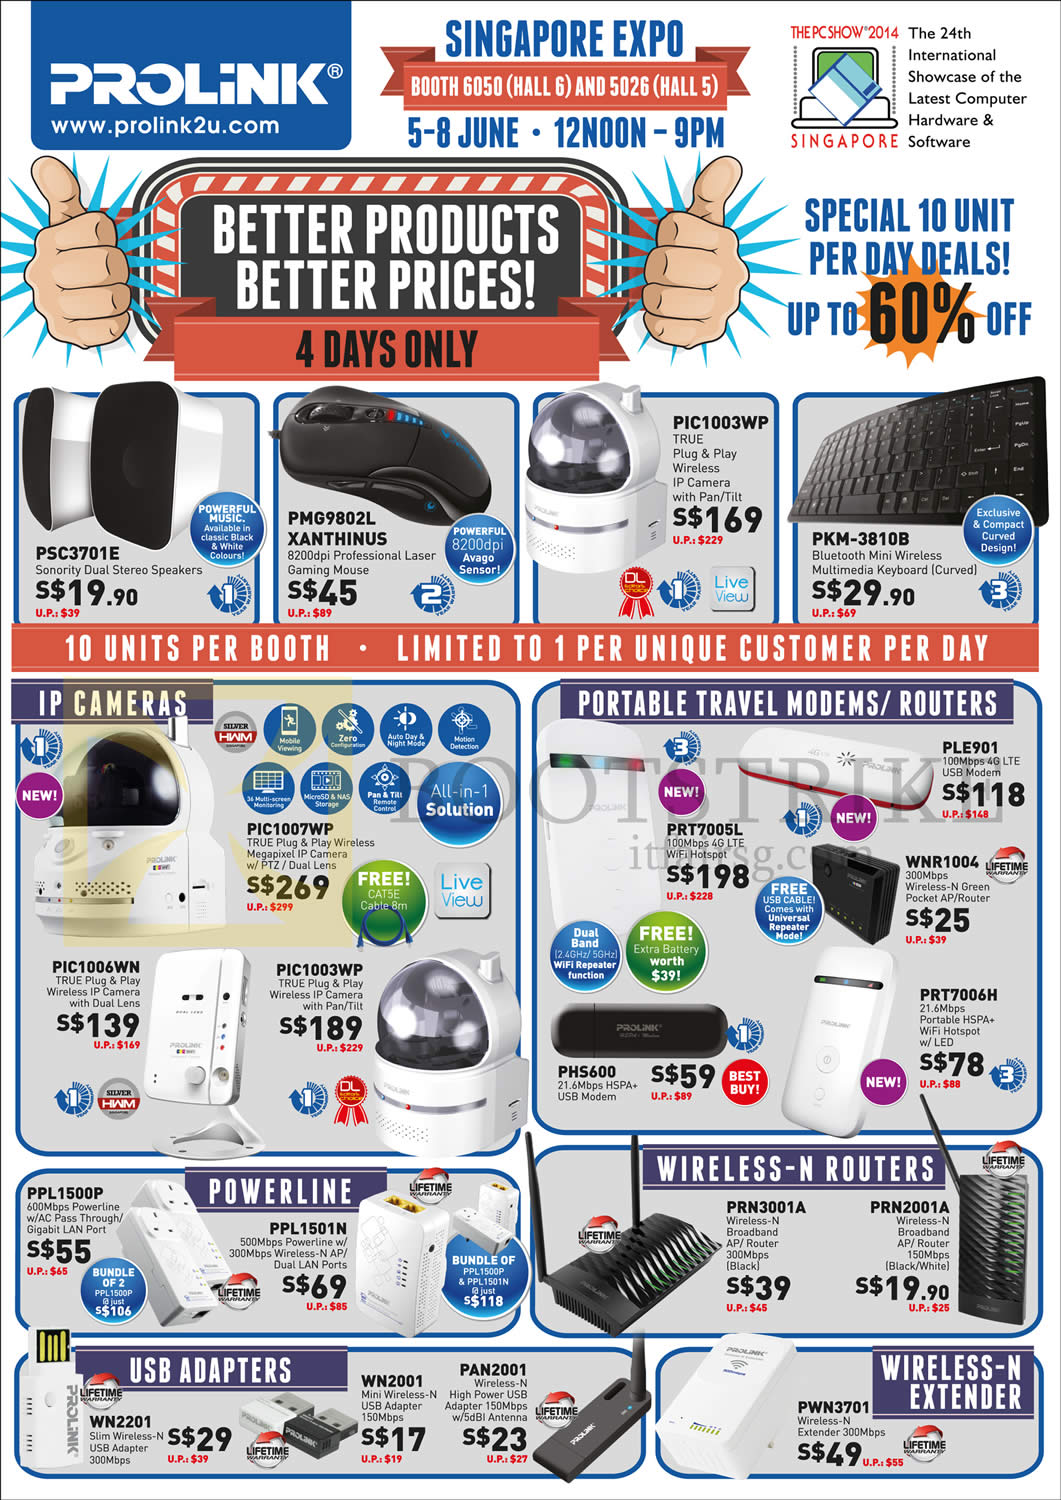 PC SHOW 2014 price list image brochure of Prolink IP Cameras IPCam, Portable Travel Modems, Routers, USB Adapters, Wireless N Routers, N Extender